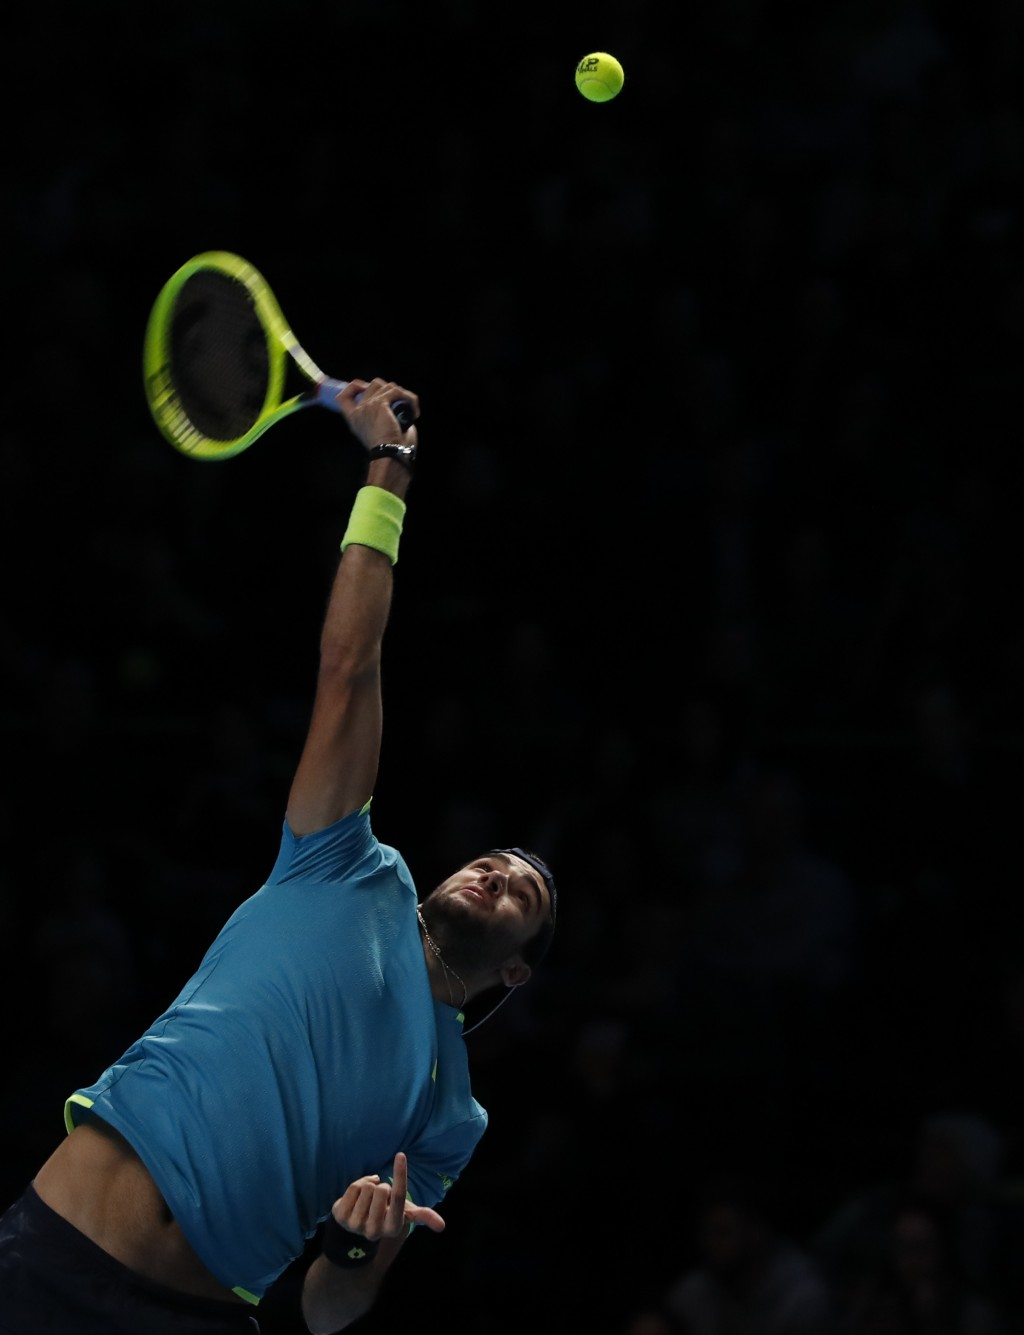 Italy's Matteo Berrettini serves to Serbia's Novak Djokovic during their ATP World Tour Finals singles tennis match at the O2 Arena in London, Sunday,...